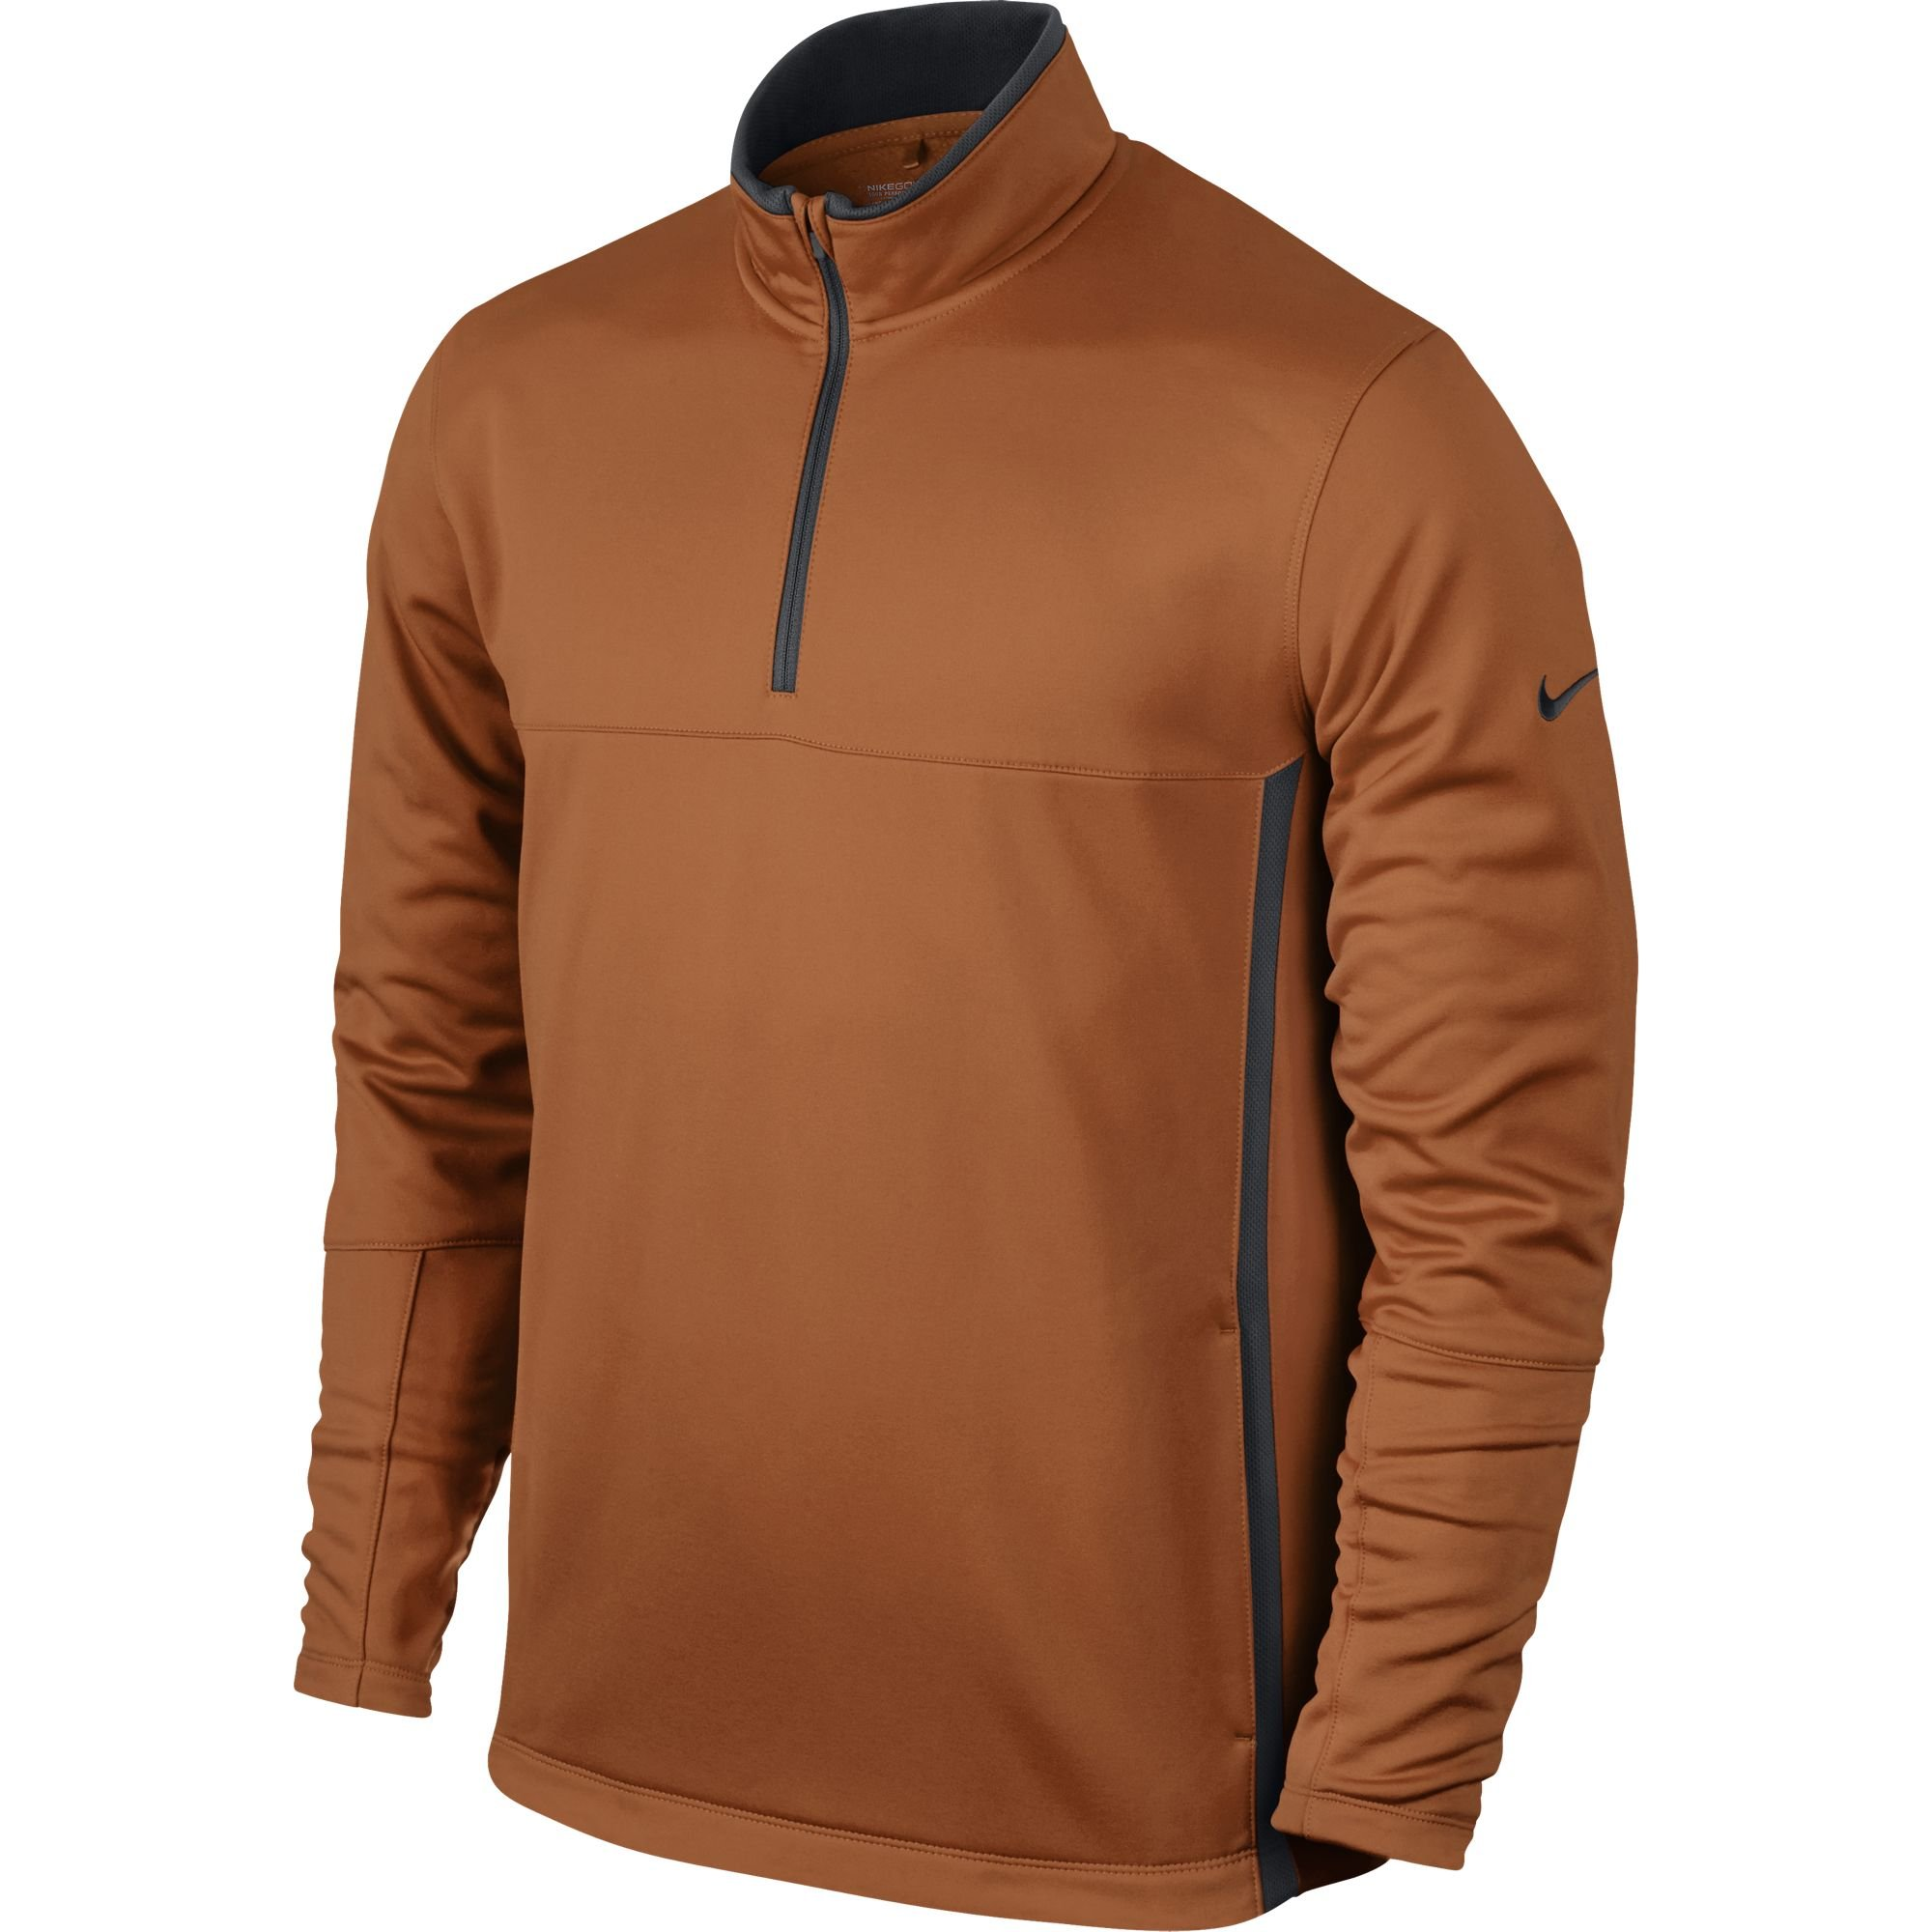 NIKE Men's Therma-FIT Cover-Up Jacket, Desert Orange/Dark Grey/Anthracite, Medium by NIKE